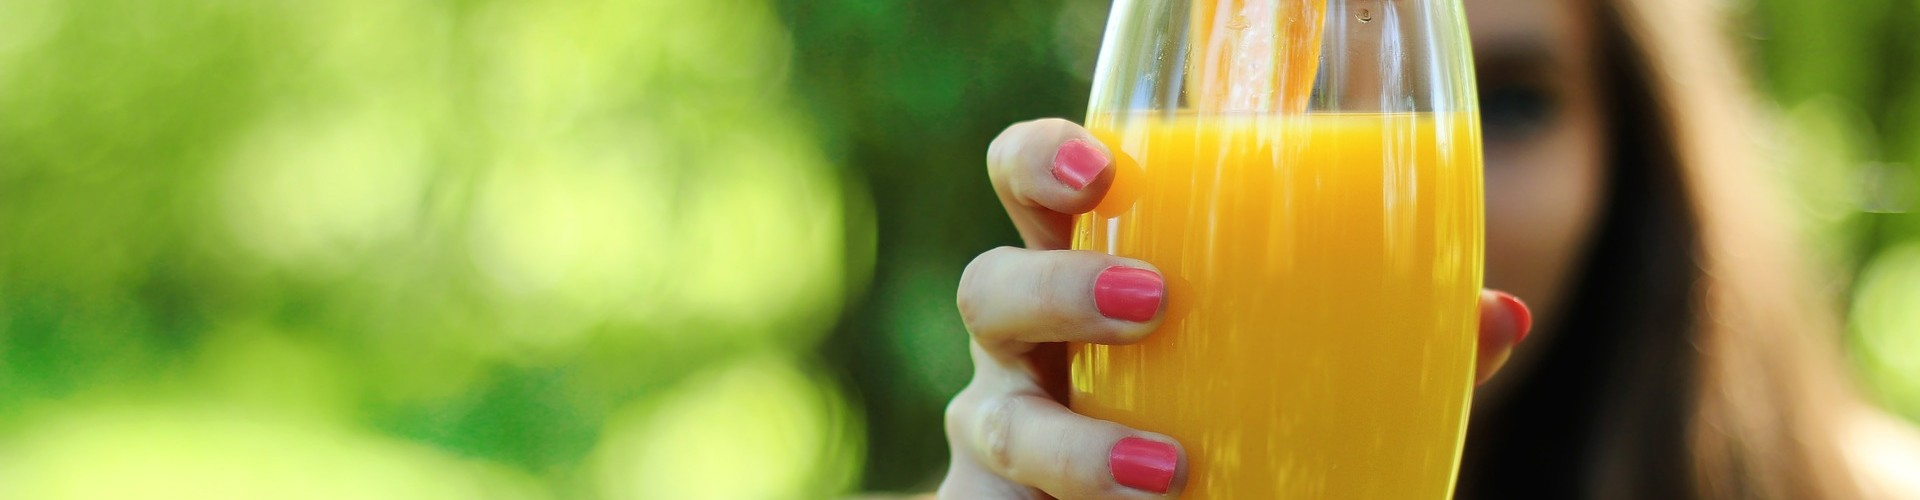 Juicing Basics: What You Need to Know to Get Started